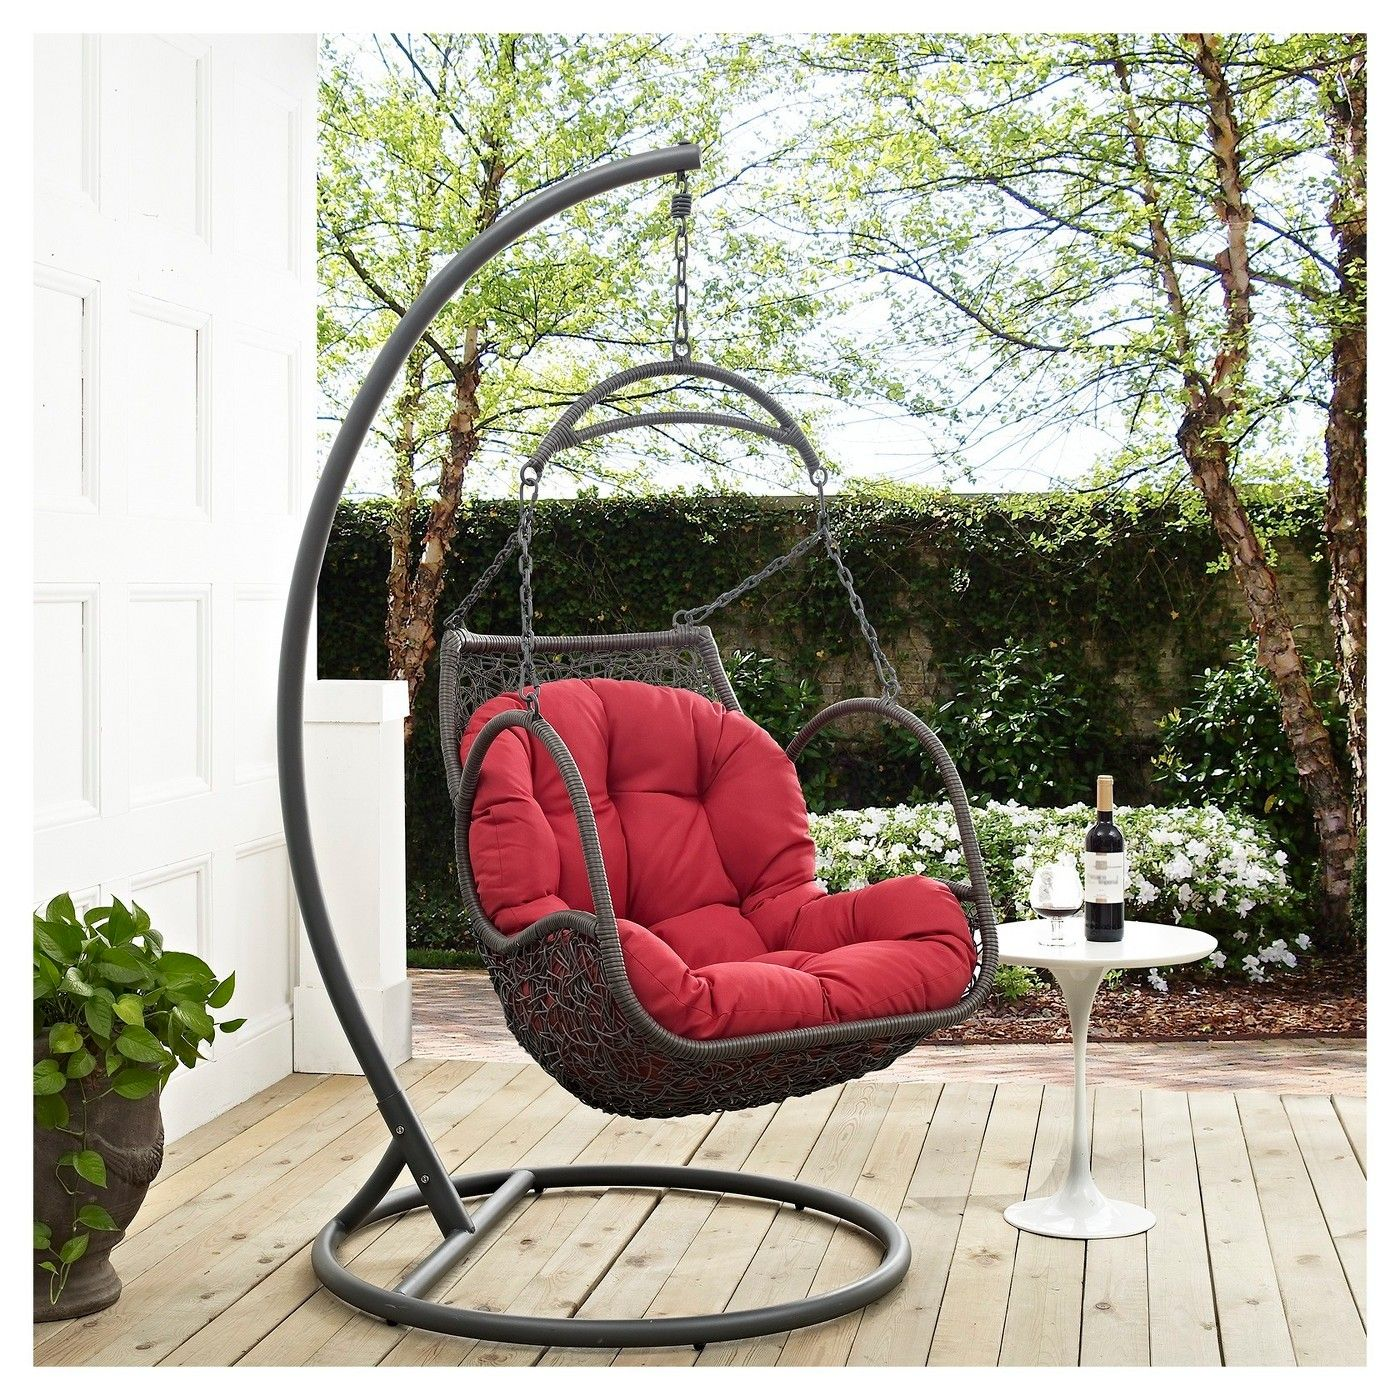 Arbor Outdoor Patio Wood Swing Chair  Modway  Image